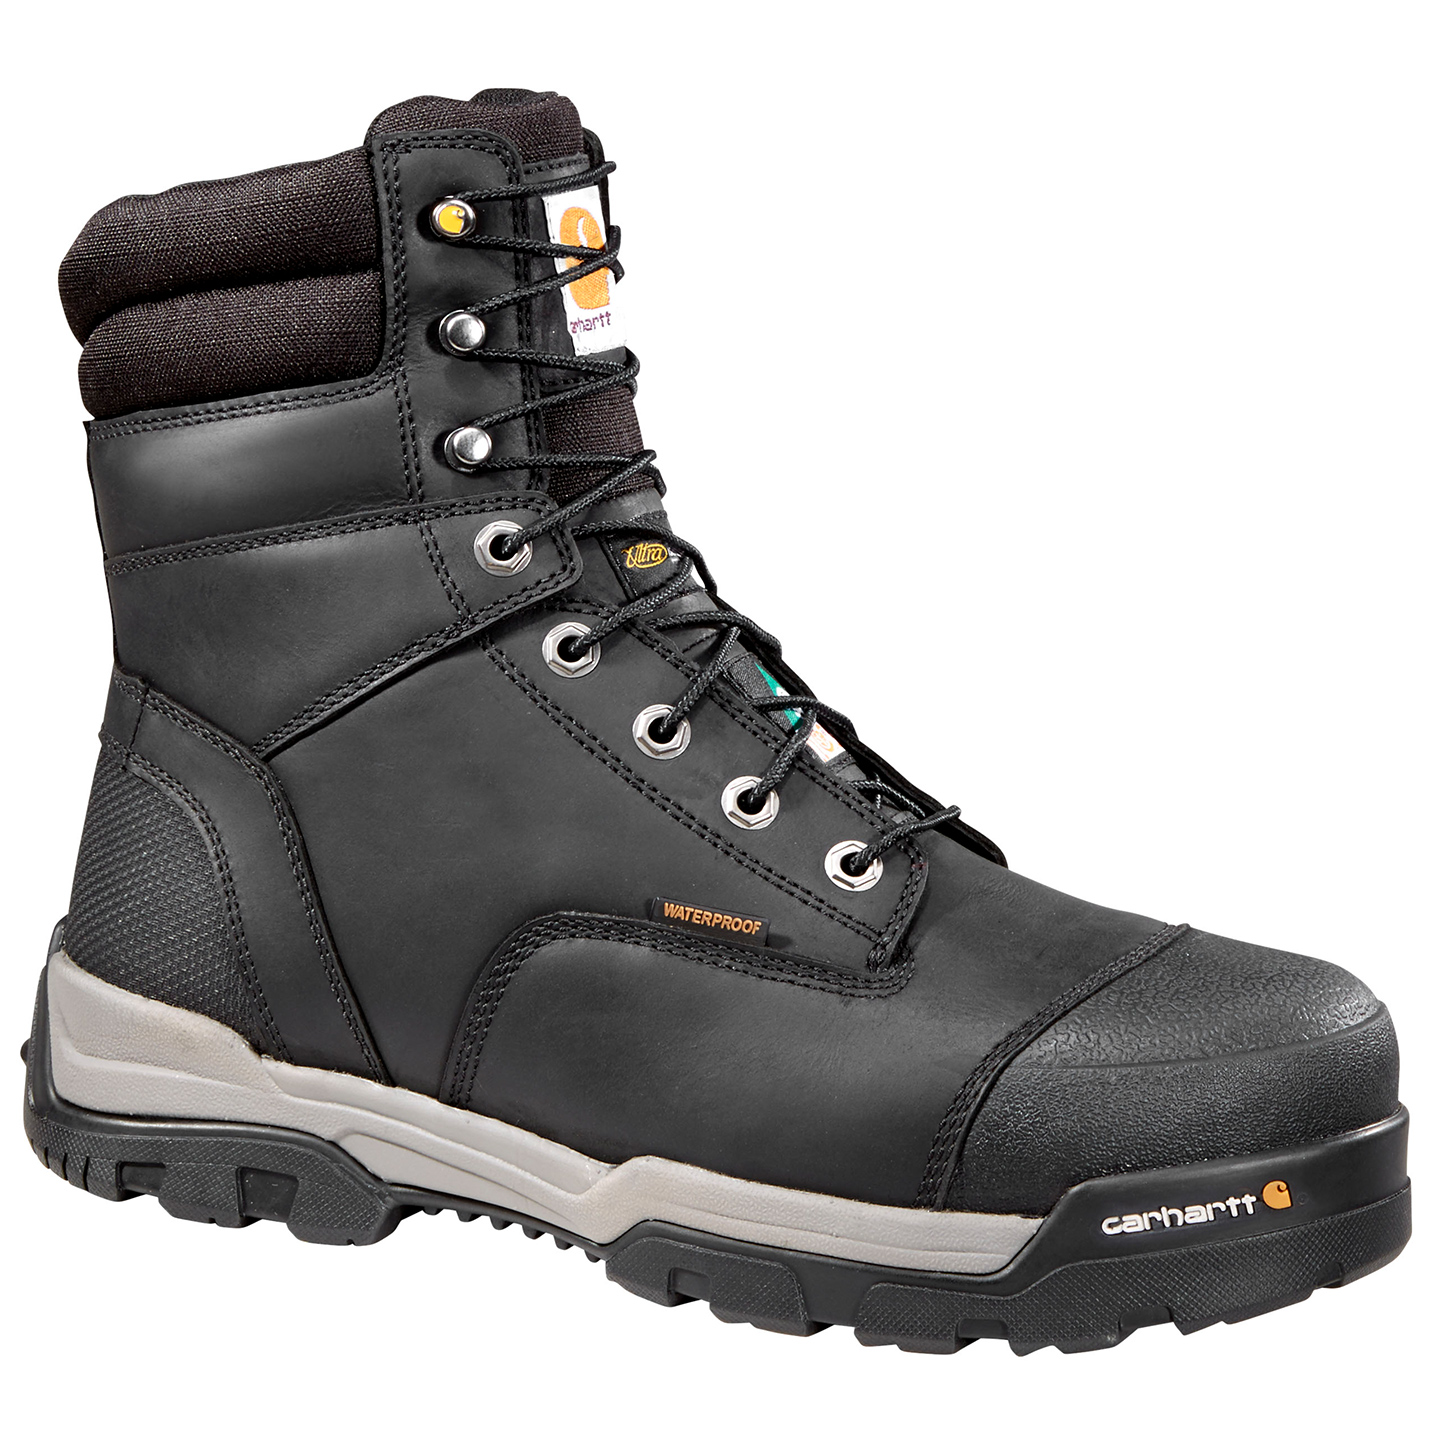 8316f7f36de Carhartt Ground Force 8 inch CSA Composite Toe Puncture Resistant Insulated  Waterproof Men s Work Boots